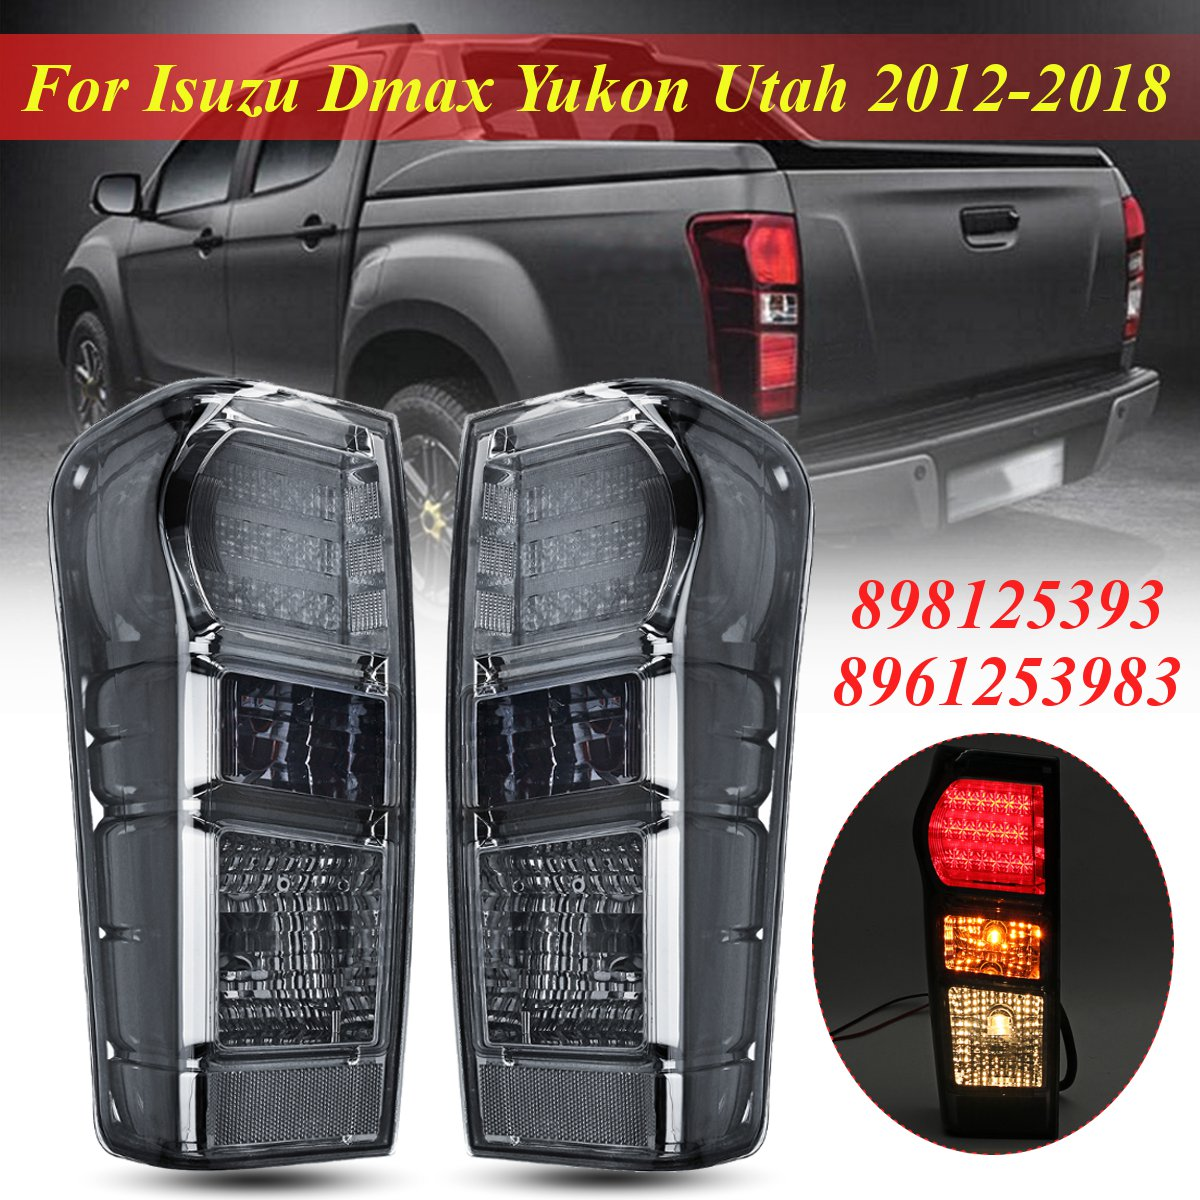 1 Pair Rear Tail Light Brake Lamp Tail Light Lamp With Wire harness For Isuzu Dmax Yukon Utah 2012 2013 2014 2015 2016 2017 2018